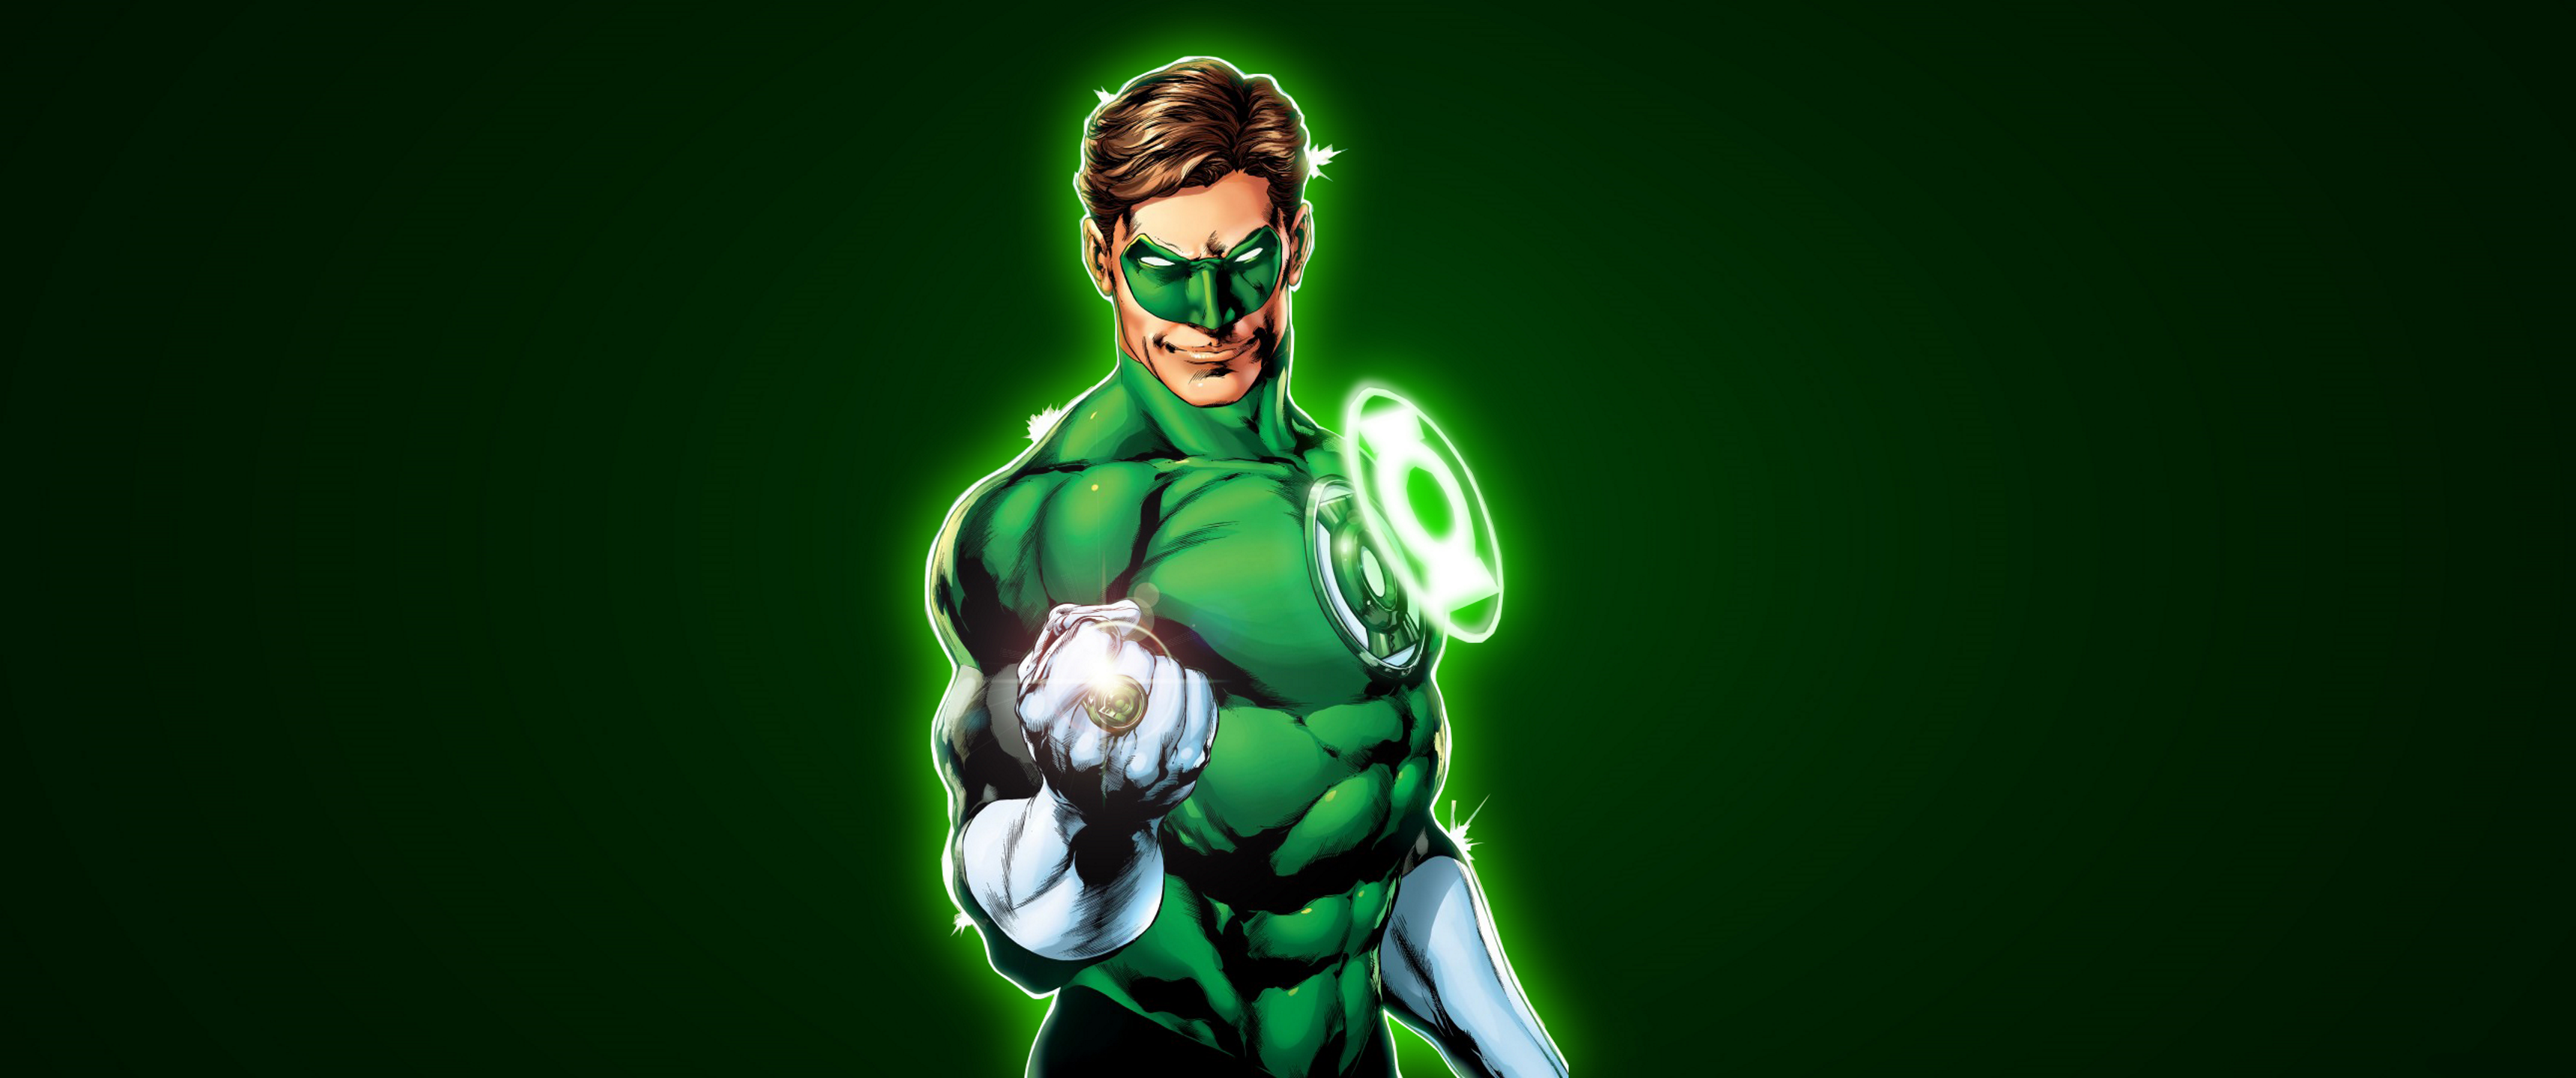 Green Lantern Full HD Wallpaper And Background Image